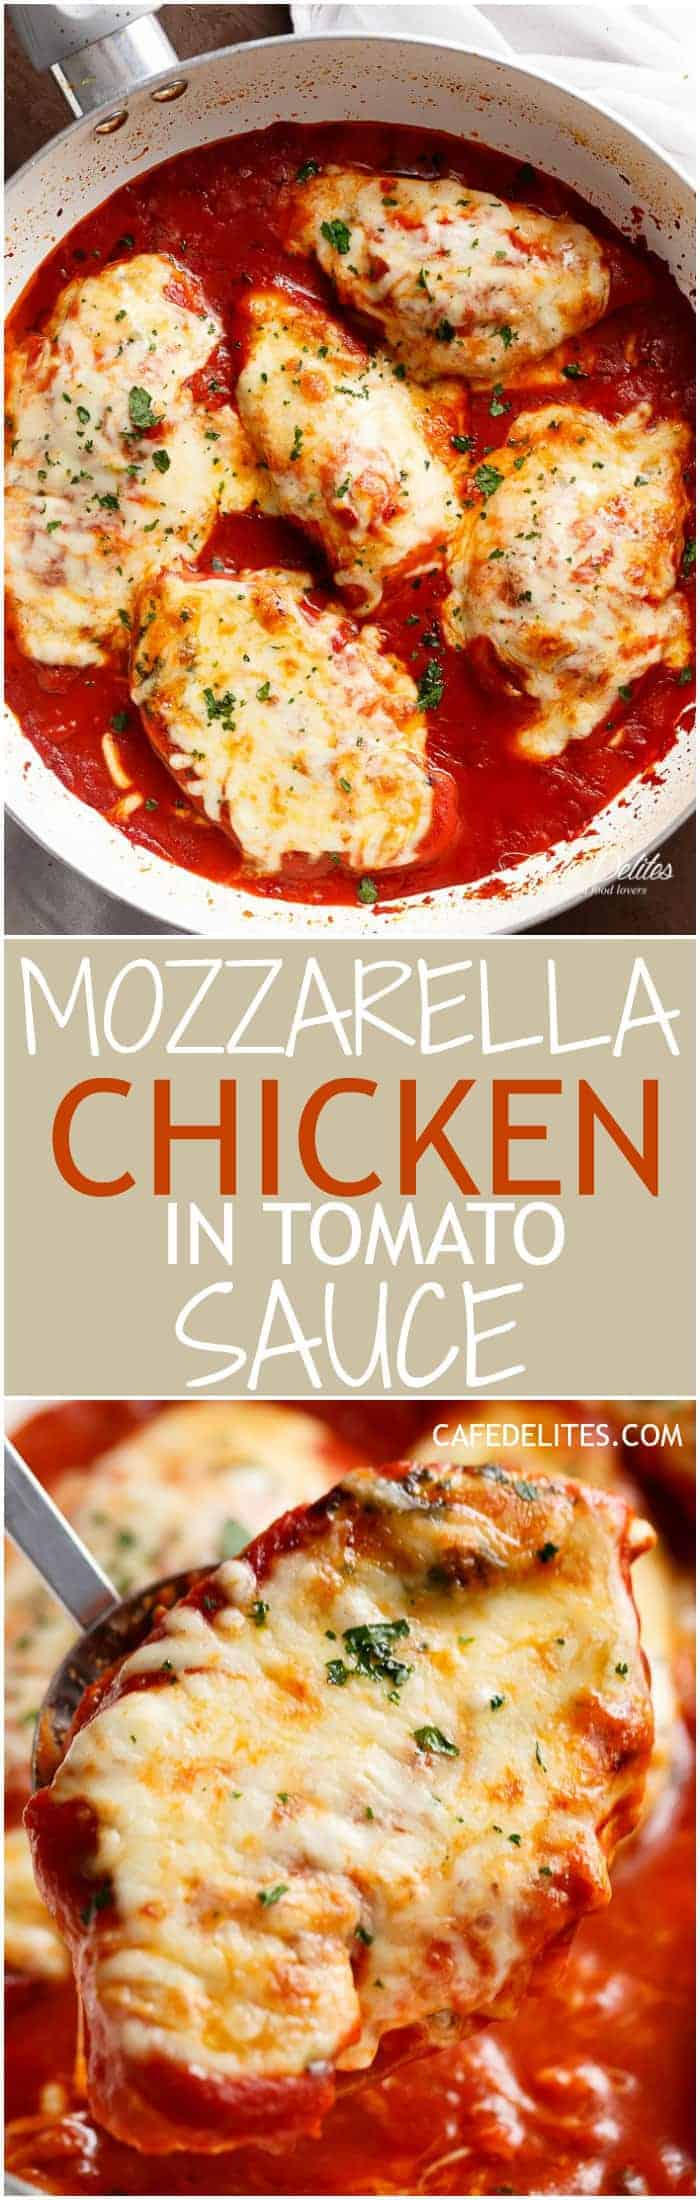 A quick and easy Mozzarella Chicken In Tomato Sauce made in the one skillet in under 15 min! A restaurant quality dinner full of flavour in half the time.   https://cafedelites.com